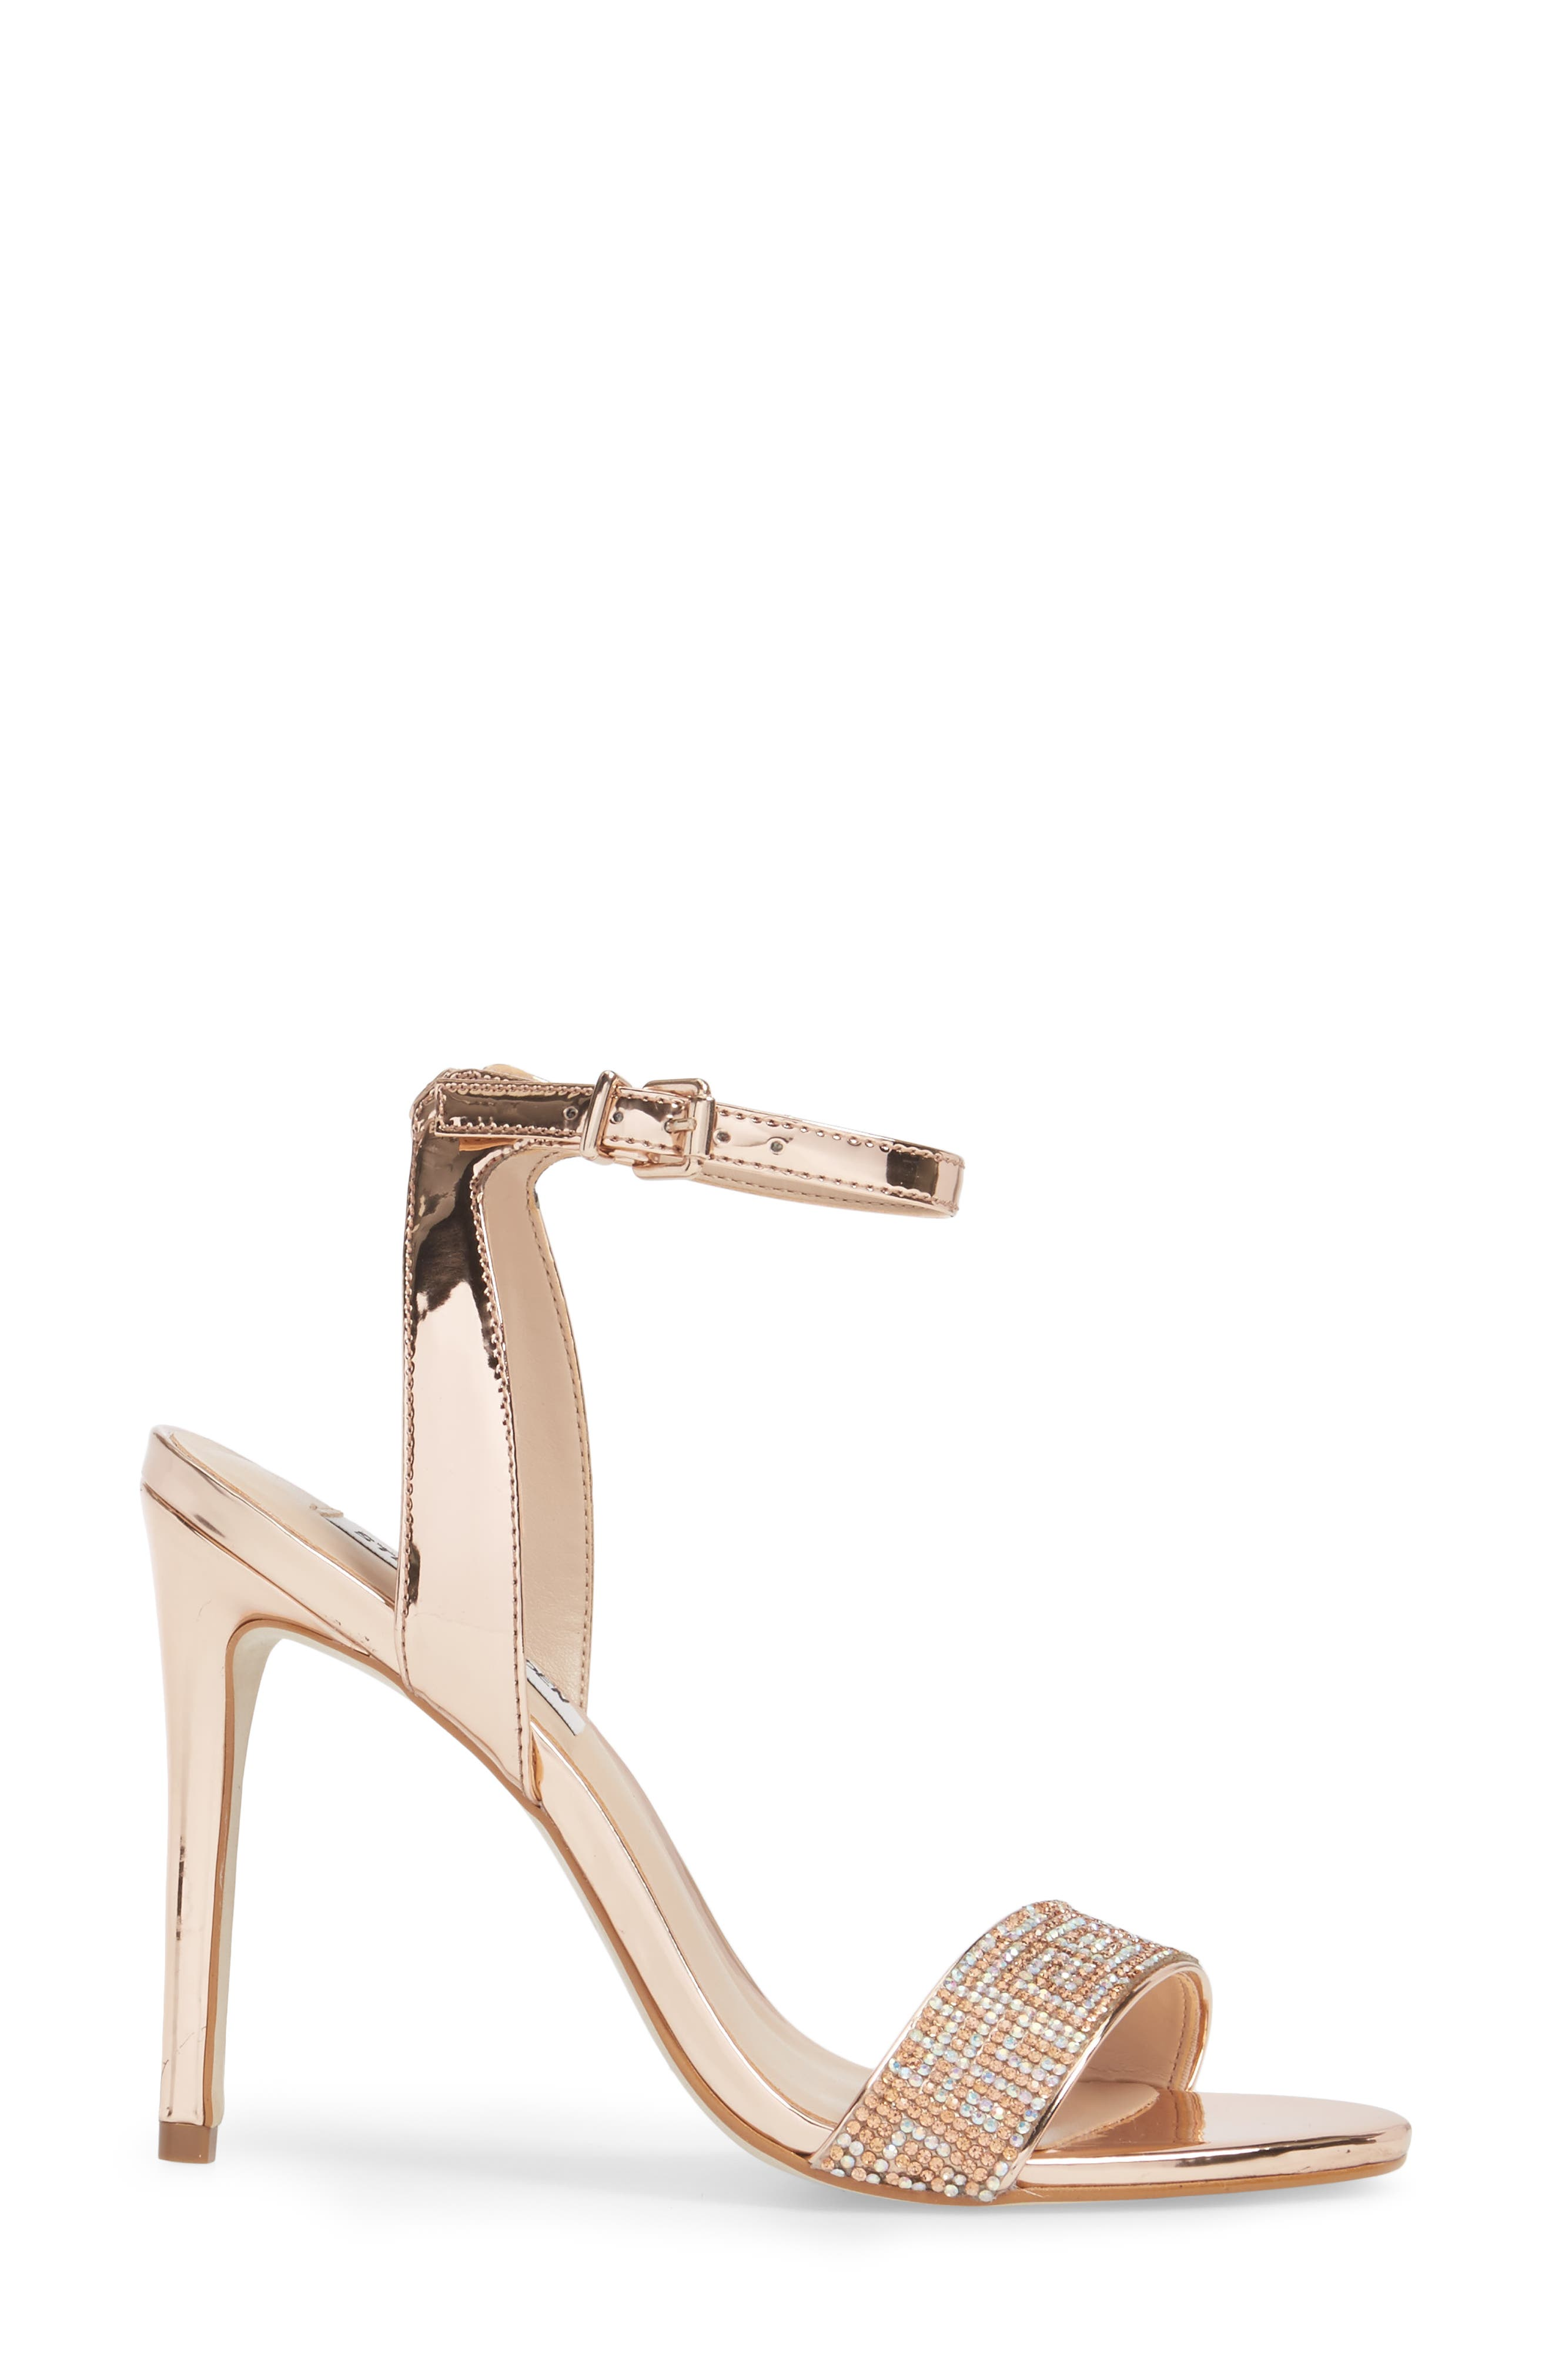 Leona Sandal,                             Alternate thumbnail 3, color,                             Rose Gold Leather